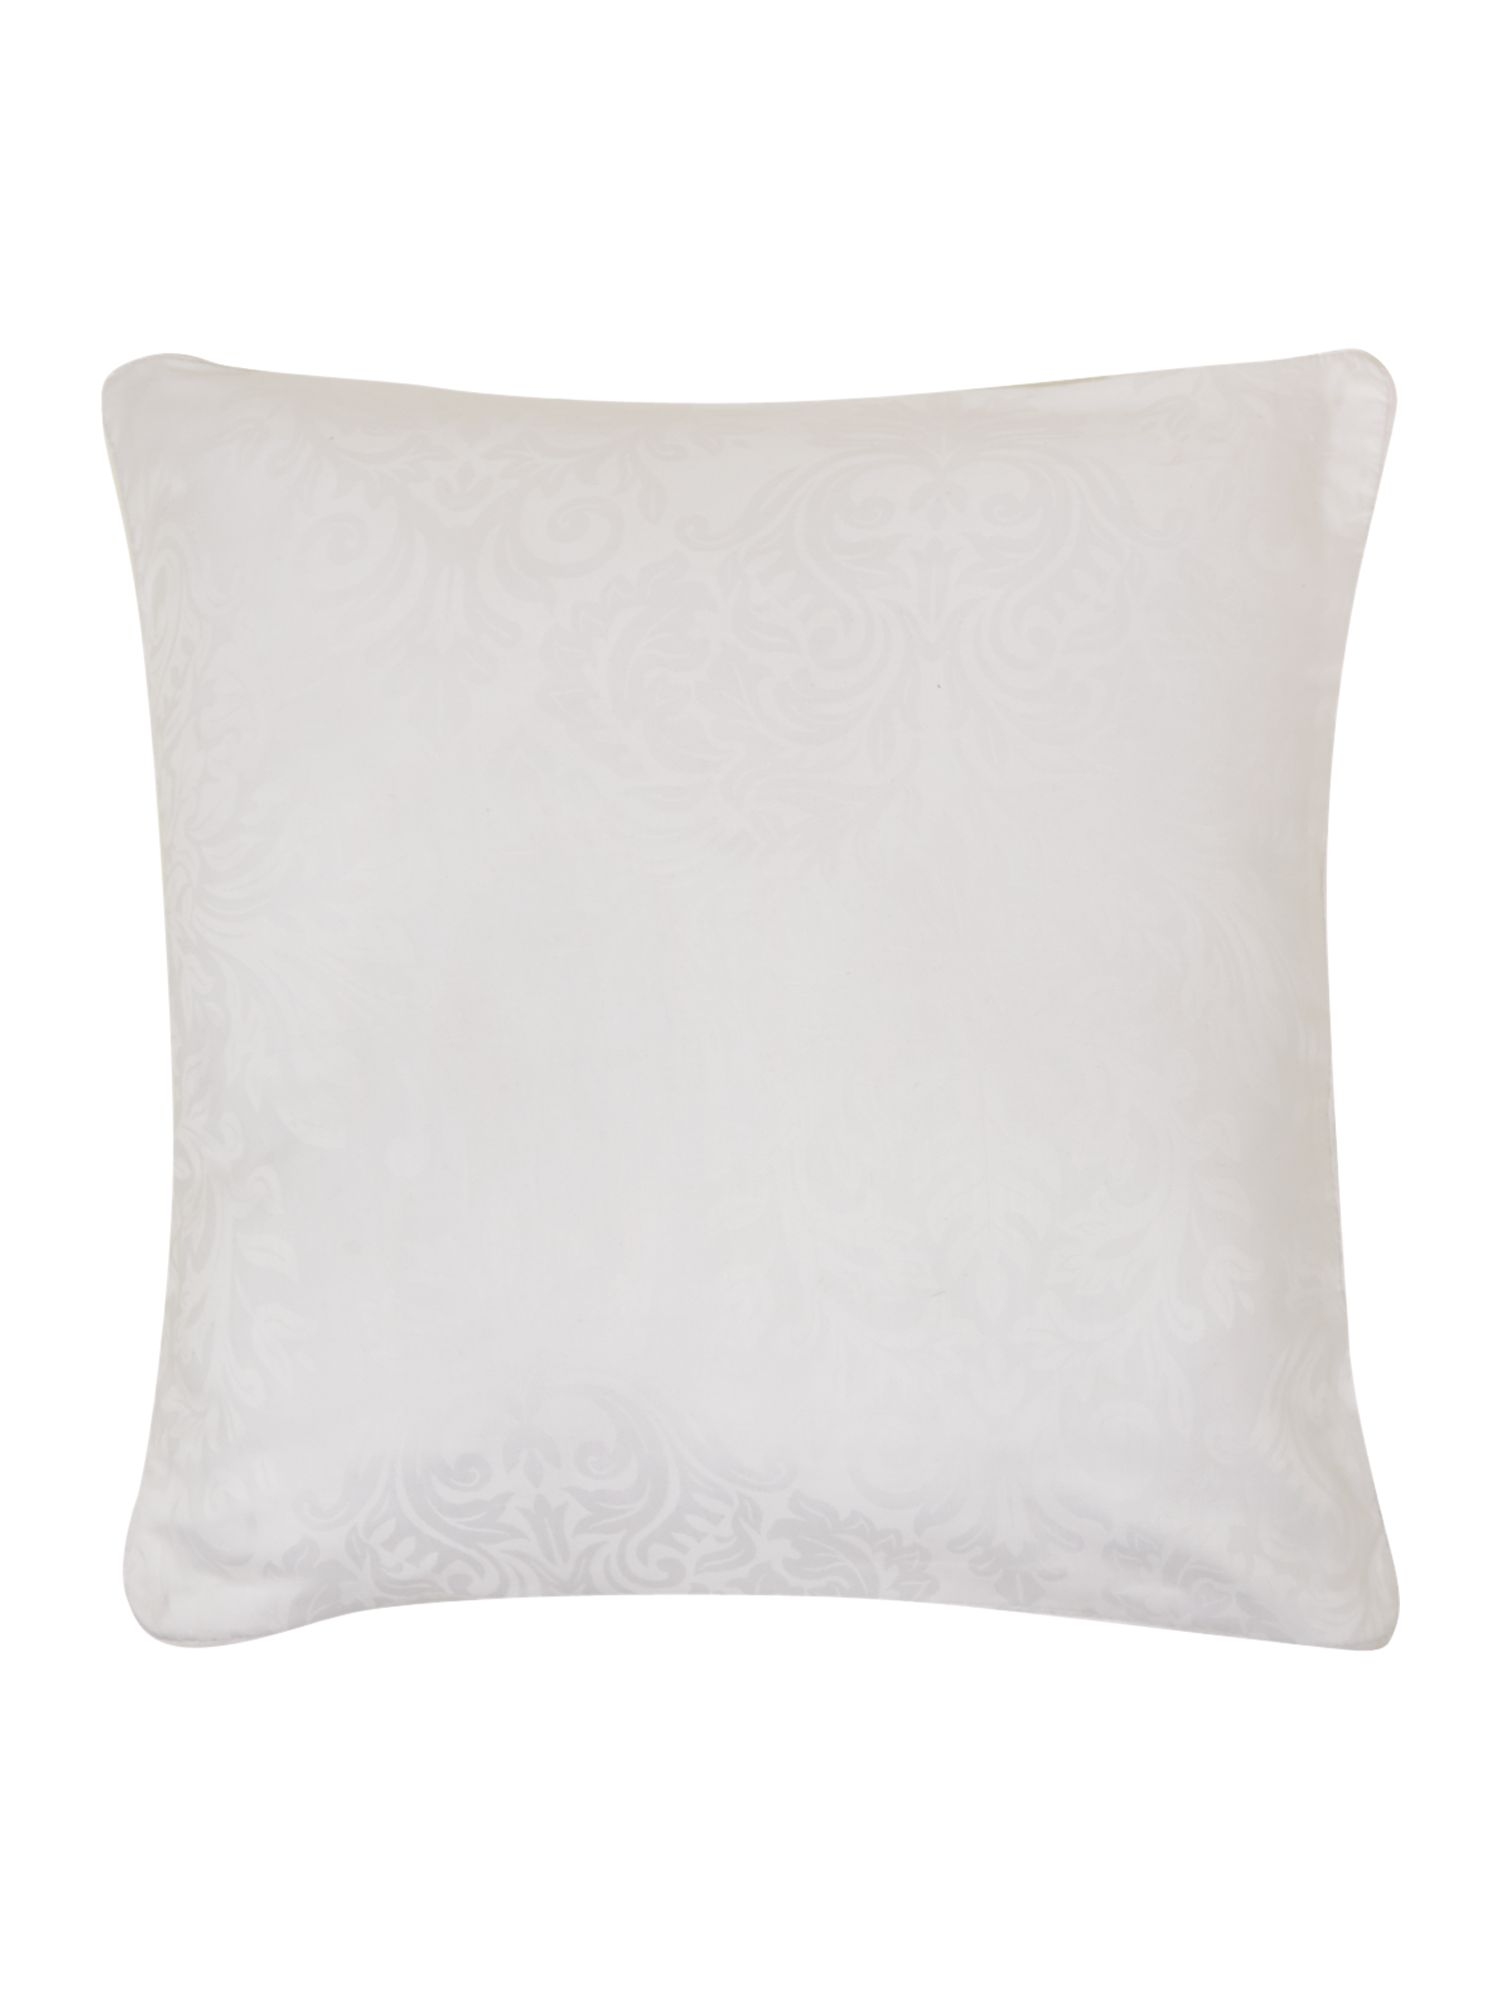 Lhc damask pair of filled cushions white